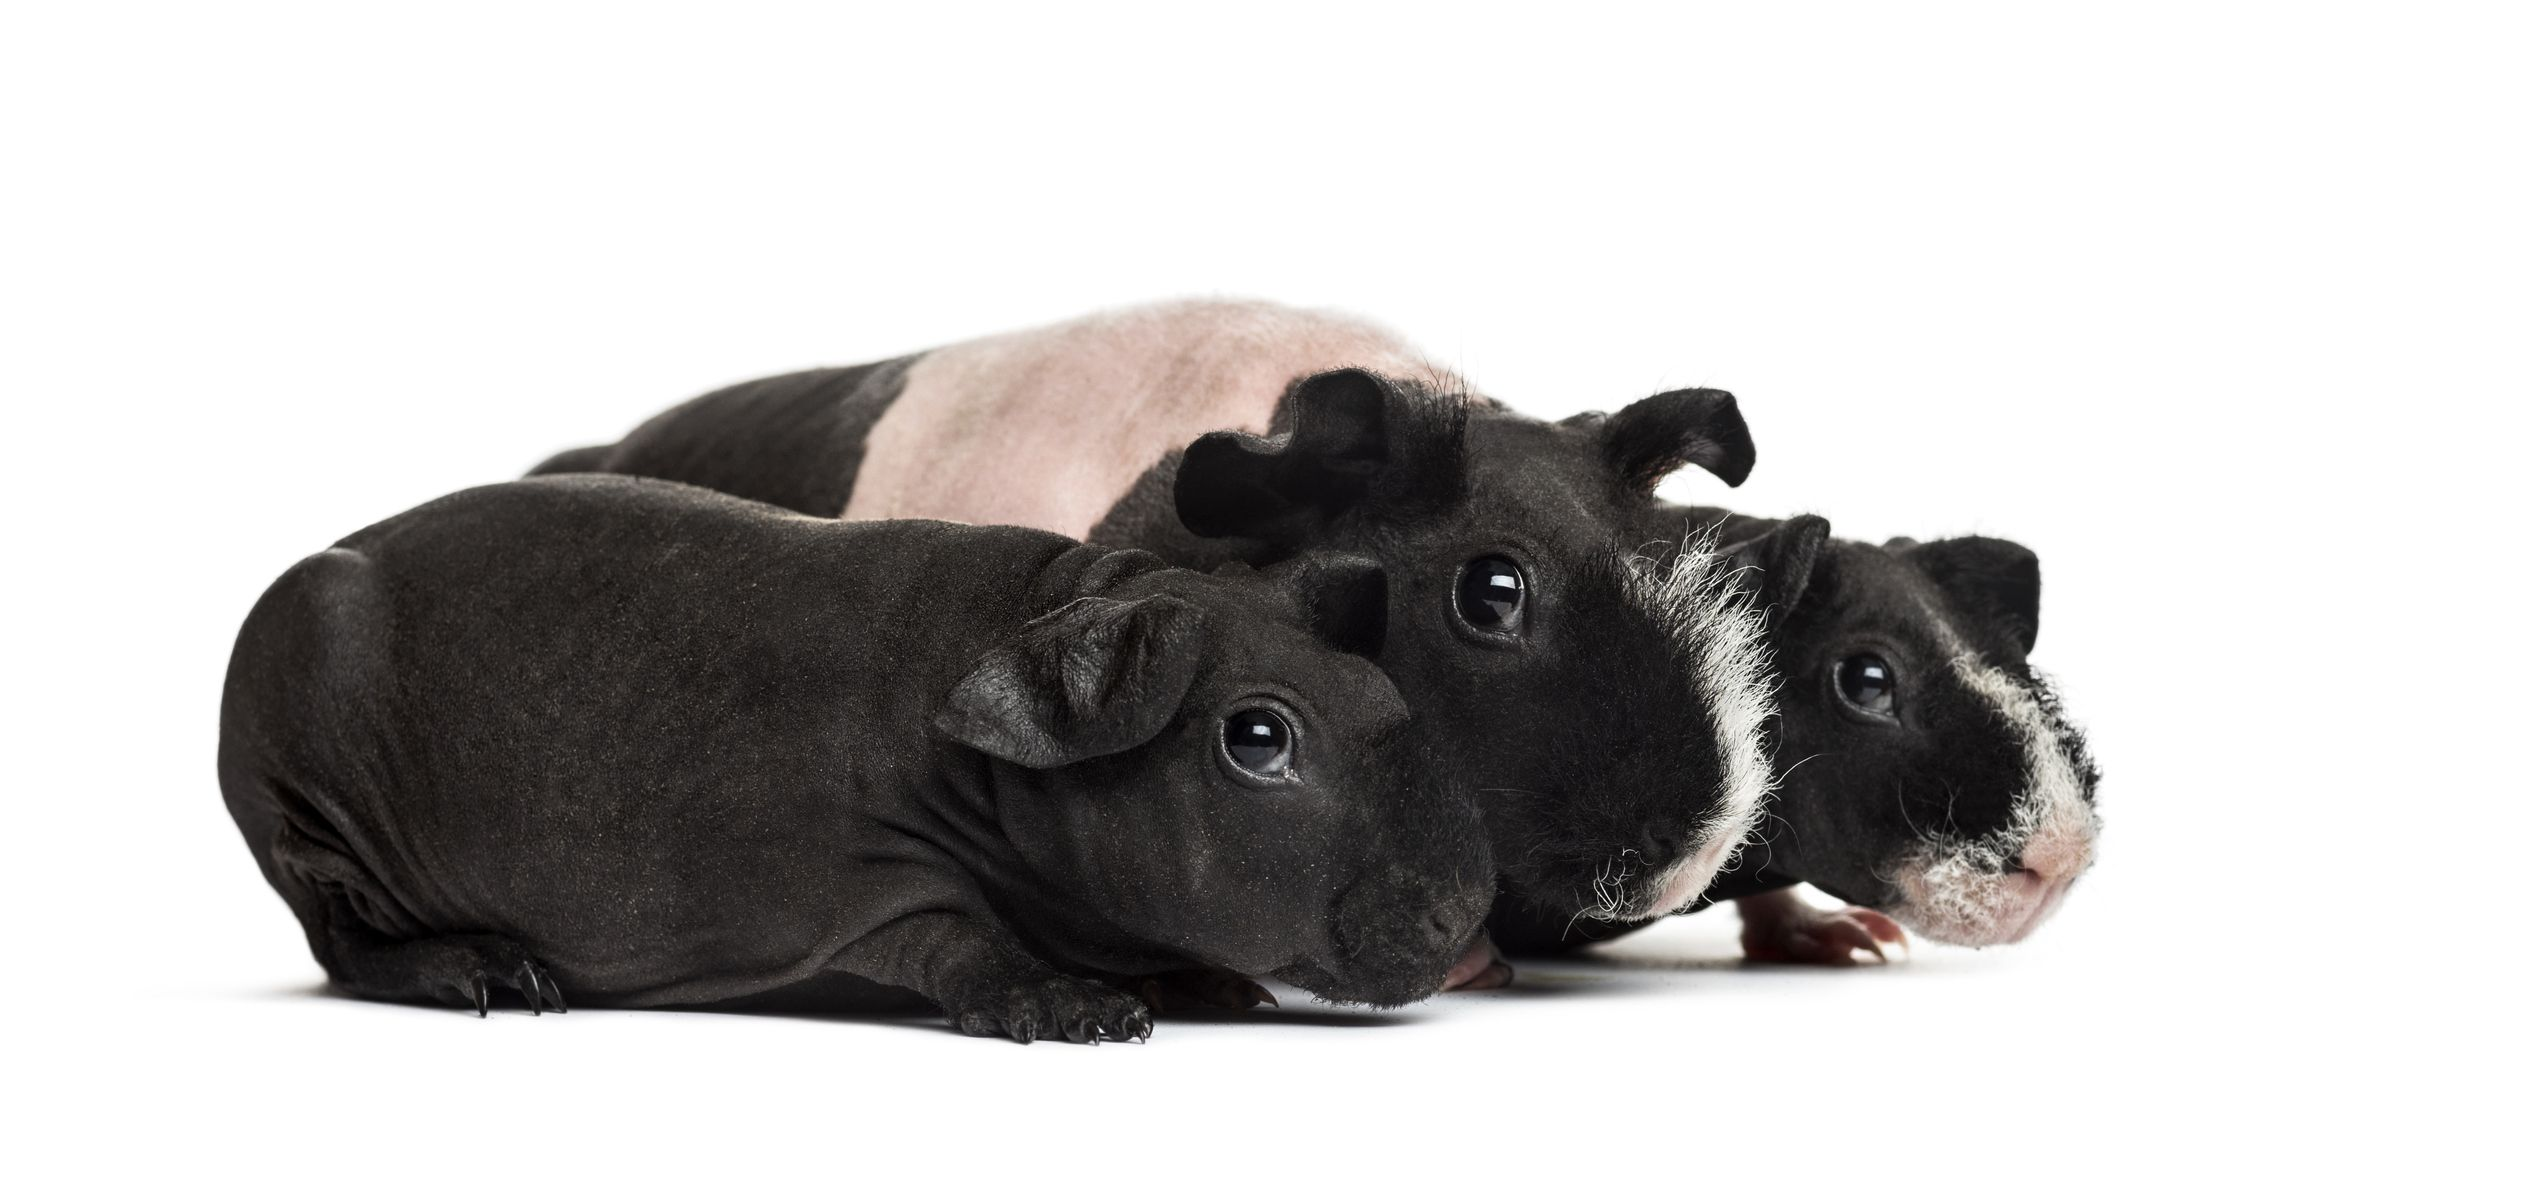 Hairless Guinea Pigs Skinny Pigs And Baldwins